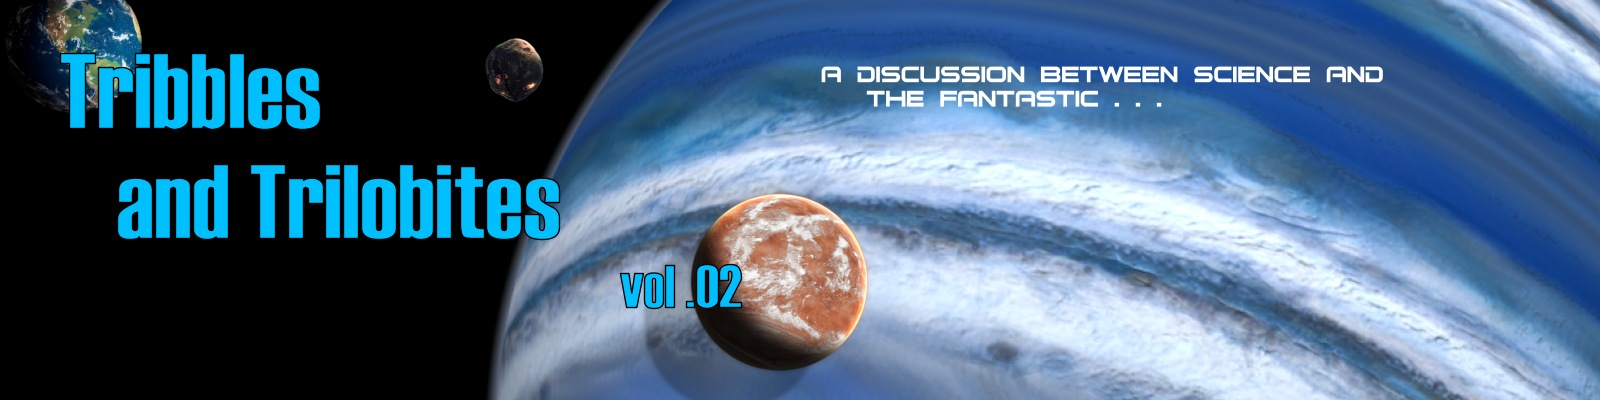 Tribbles and Trilobites - A discussion between science and the fantastic.